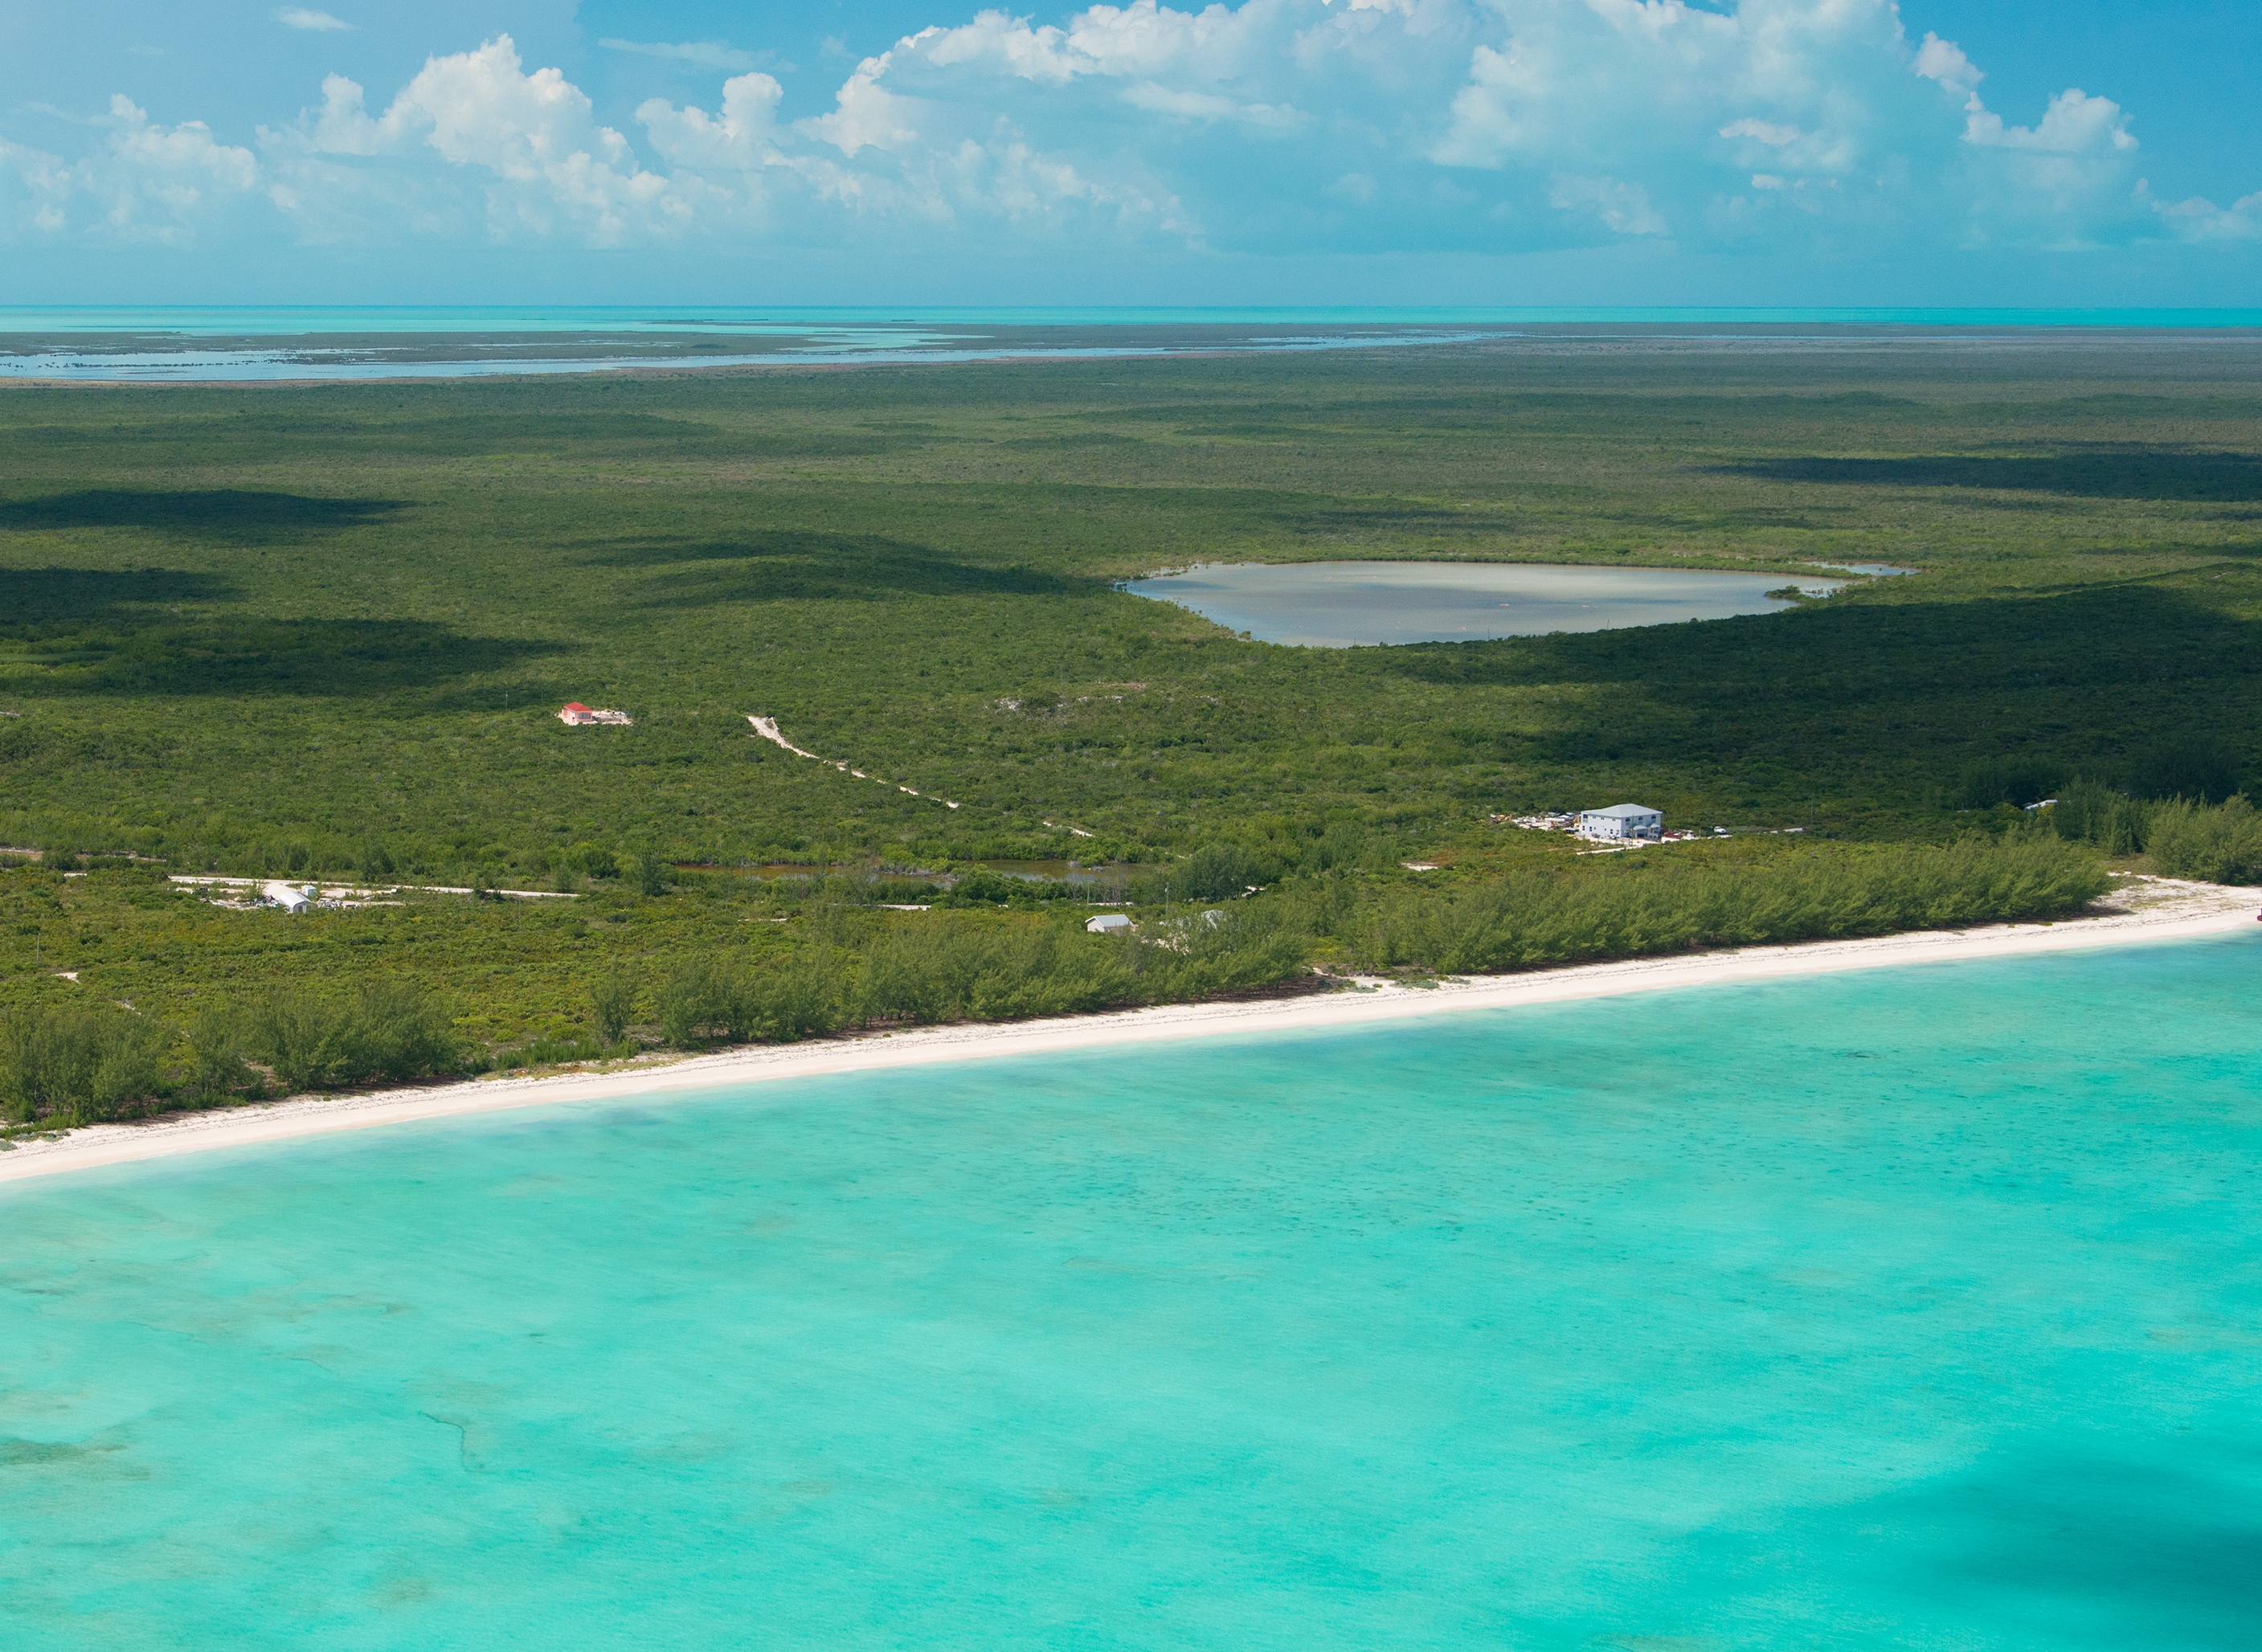 Land for Sale at Bambarra Beachfront Lot Bambarra, Turks And Caicos Islands